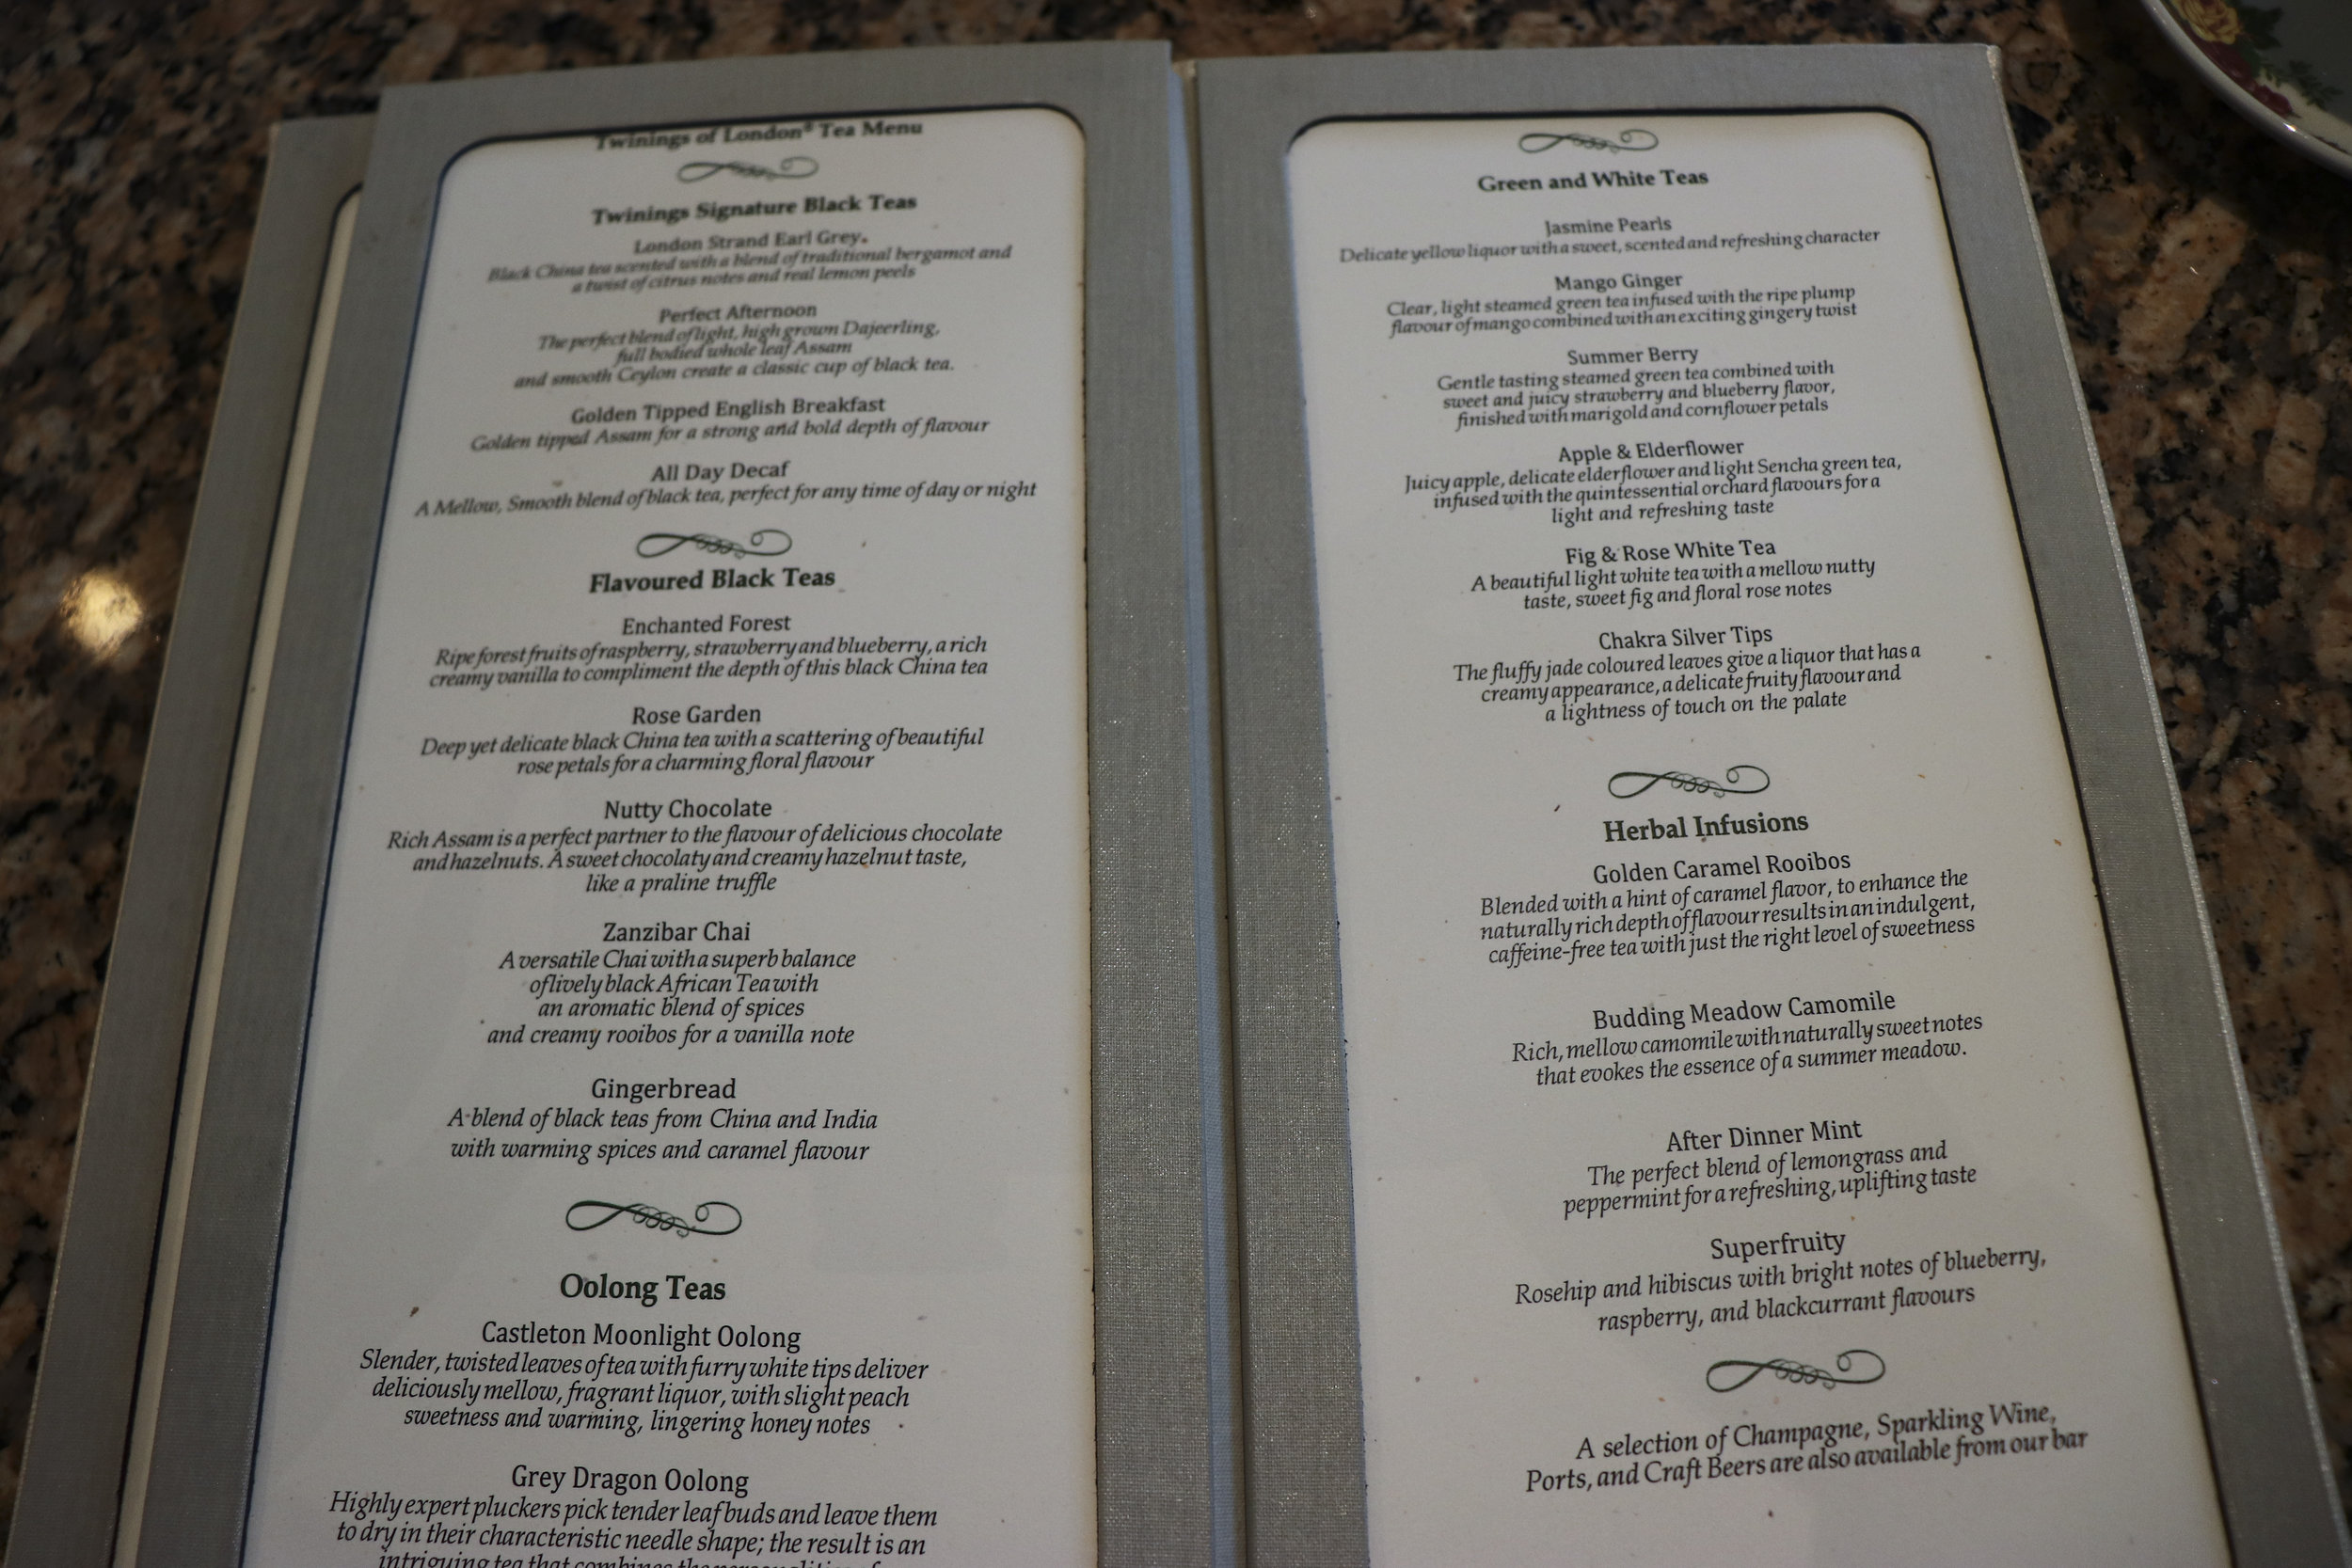 The menu of tea selections. (Click to enlarge)